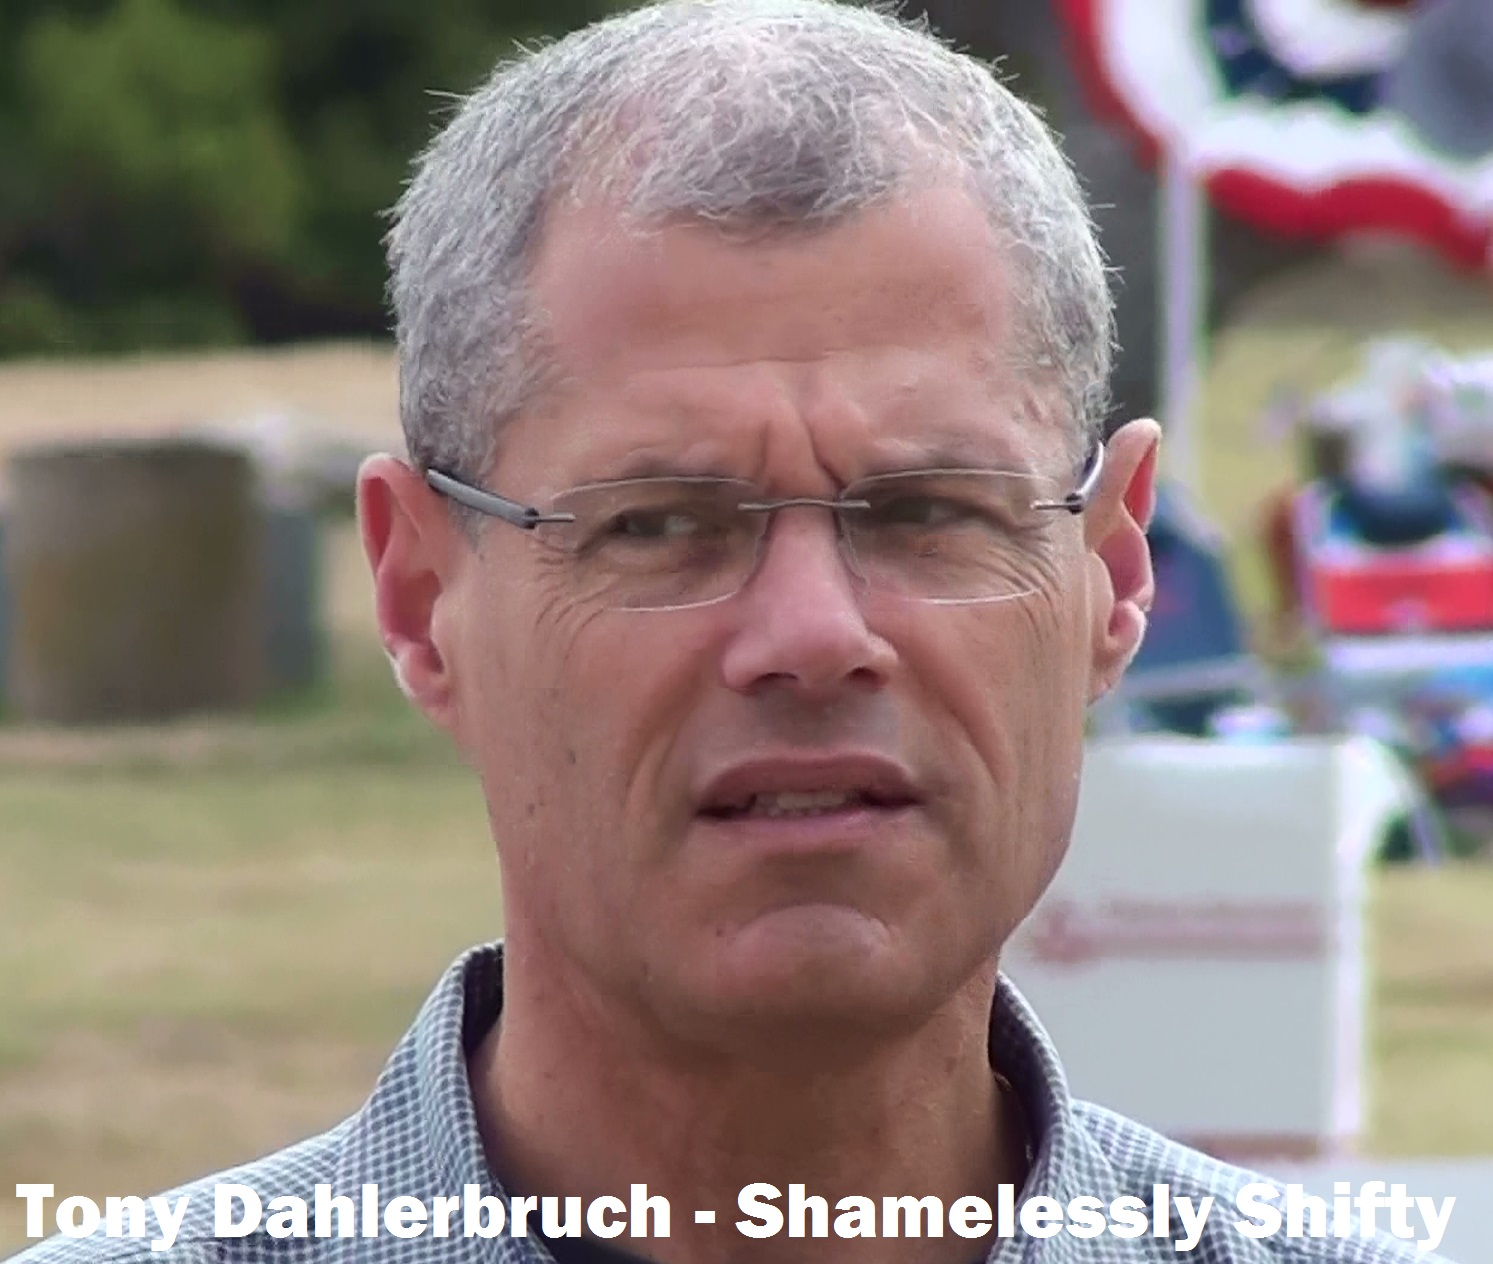 Tony Dahlerbruch - a shifty, corrupt politician not to be trusted to respect law or codes of honor